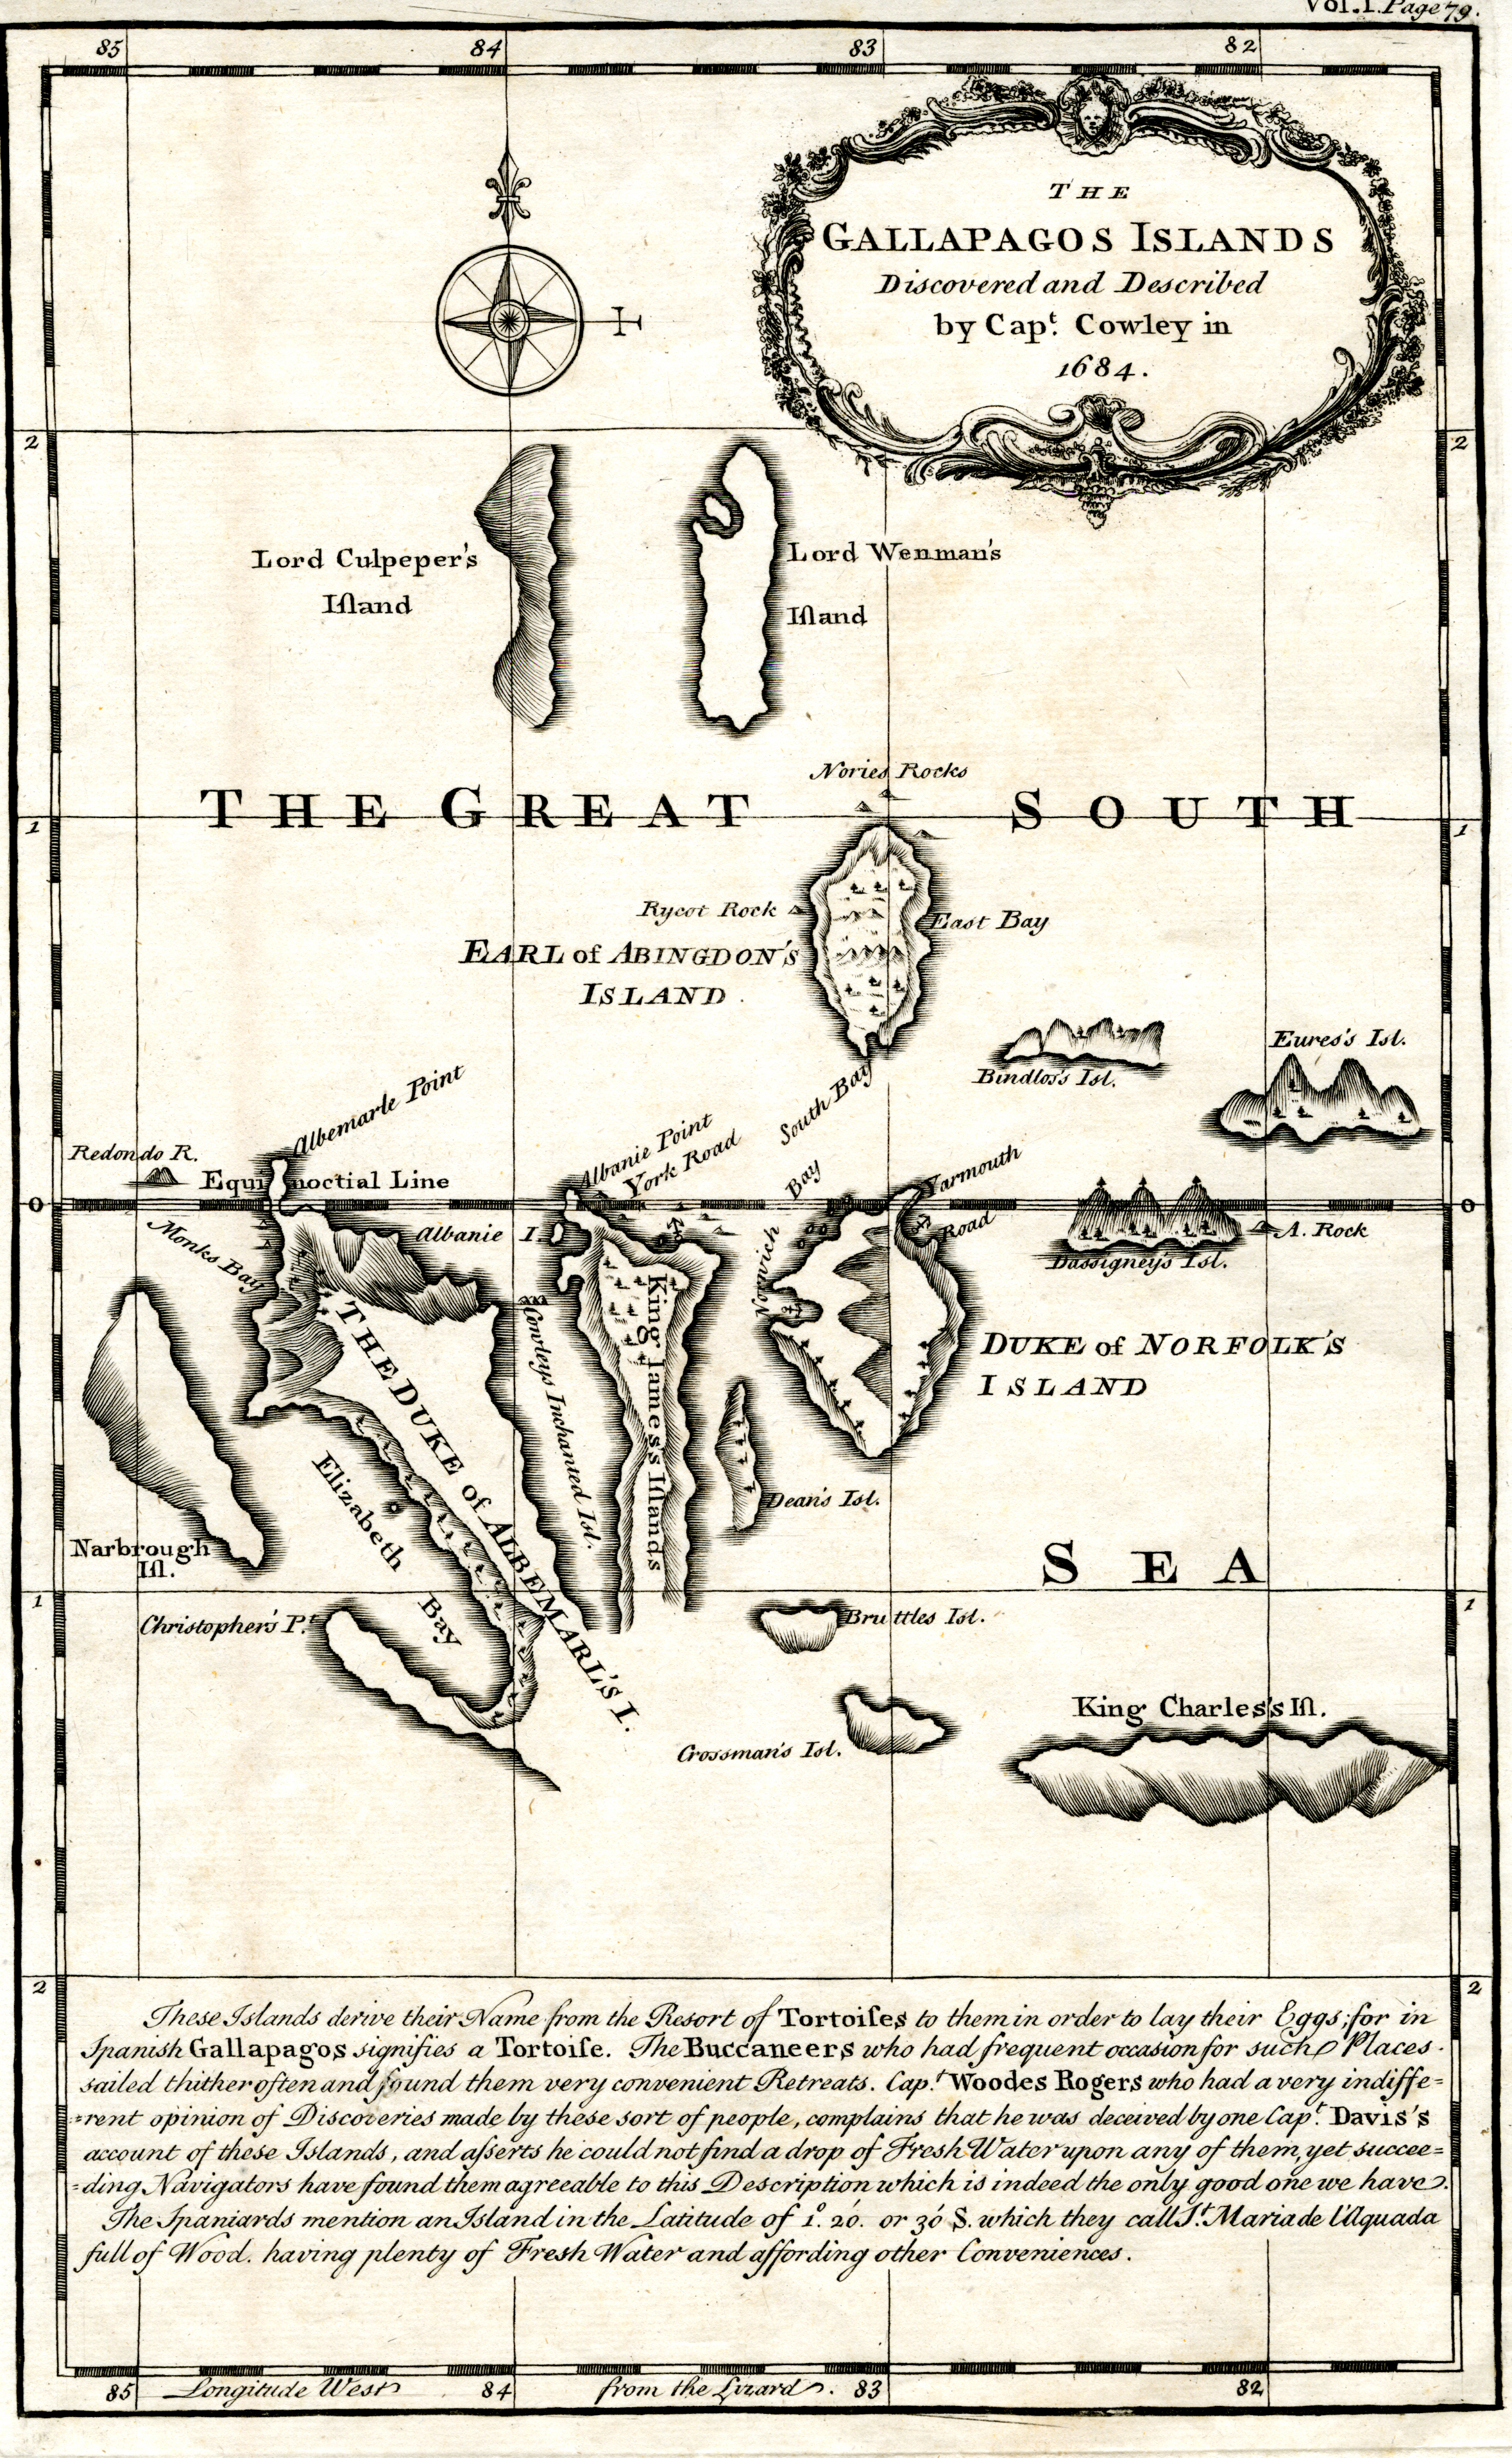 Map of the Galapagos Islands as described by Ambrose Cowley in 1684. Published in A Chronological History of the Discoveries in the South Sea or Pacific Ocean by James Burney (1803).